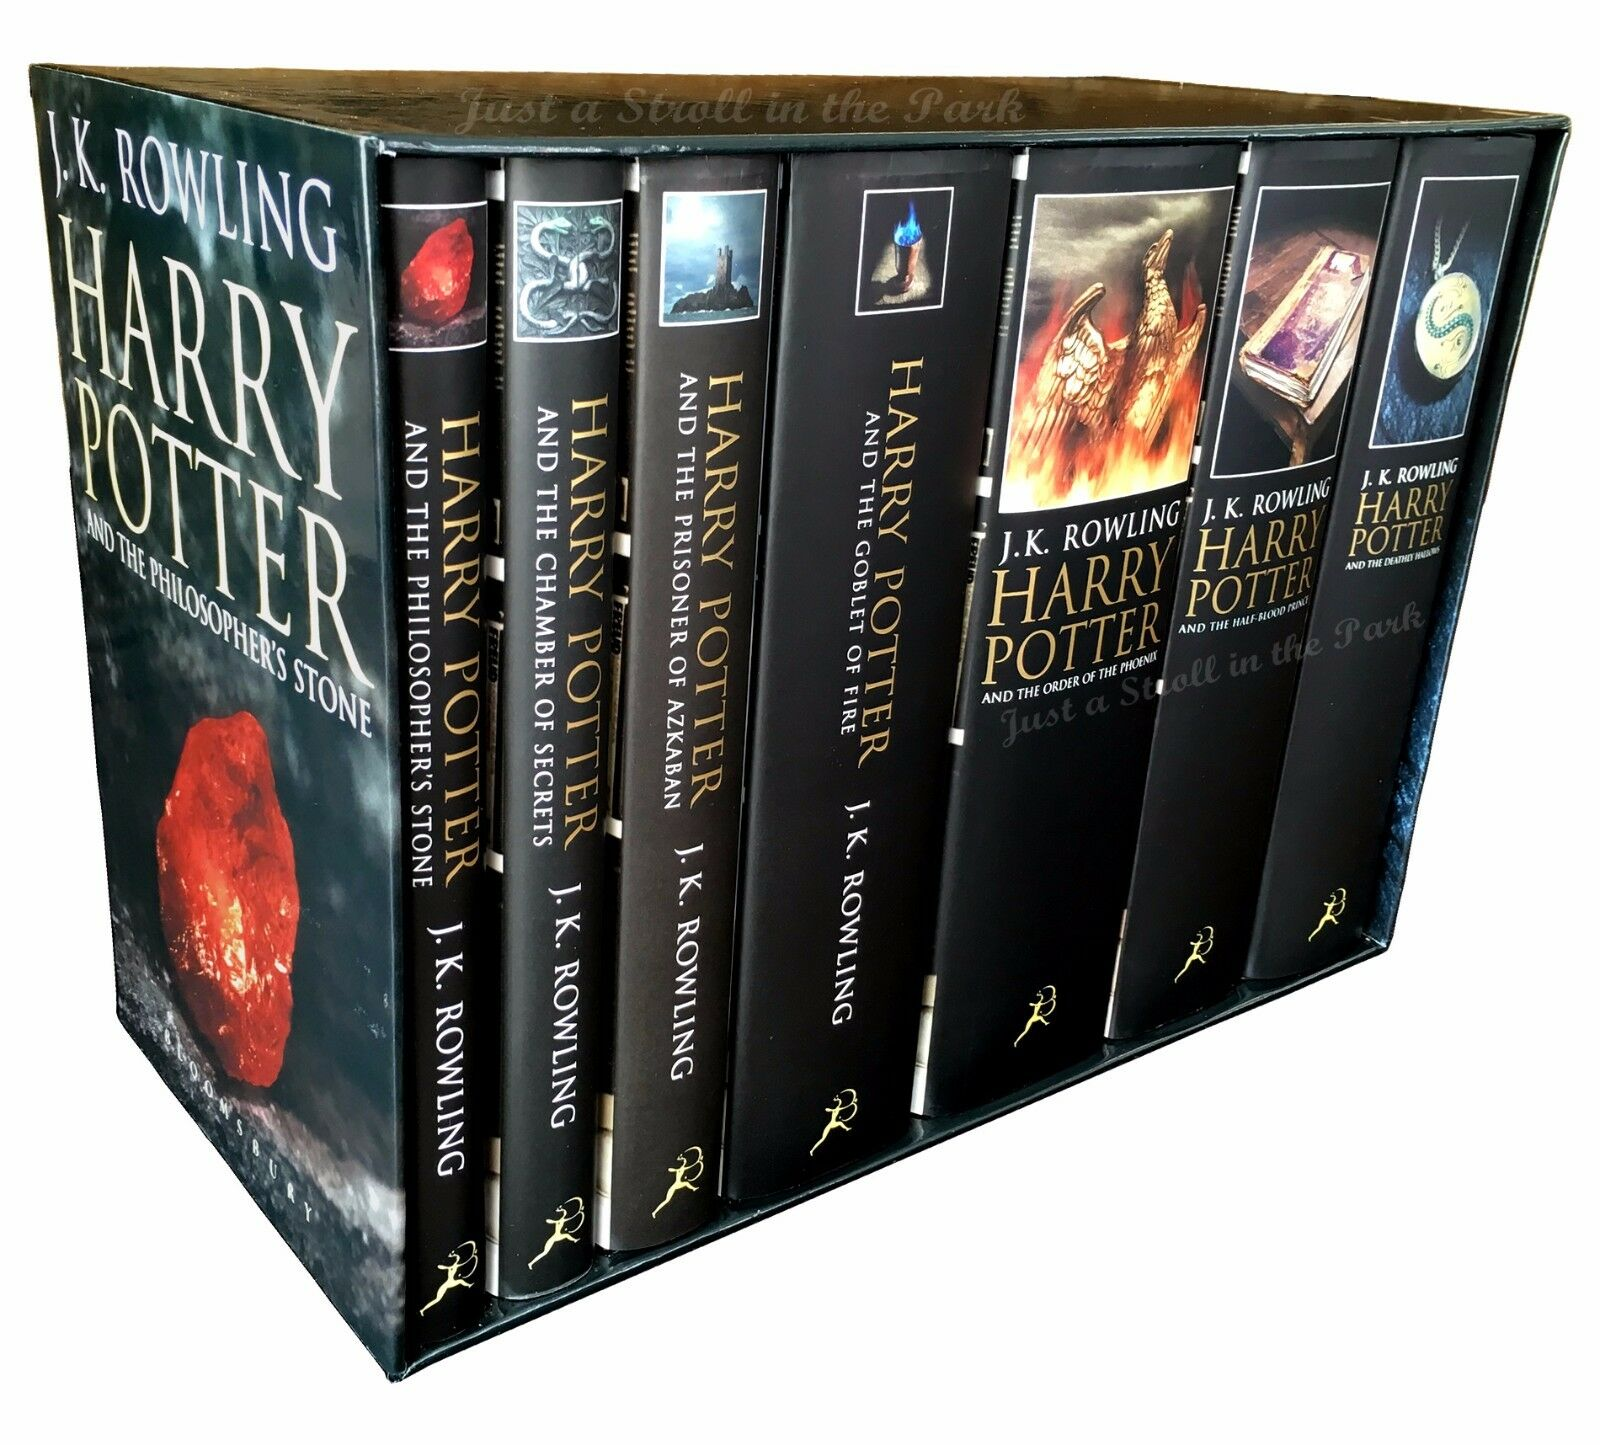 Harry Potter Book Hardcover Set ~ Harry potter complete series uk adult edition hardcover